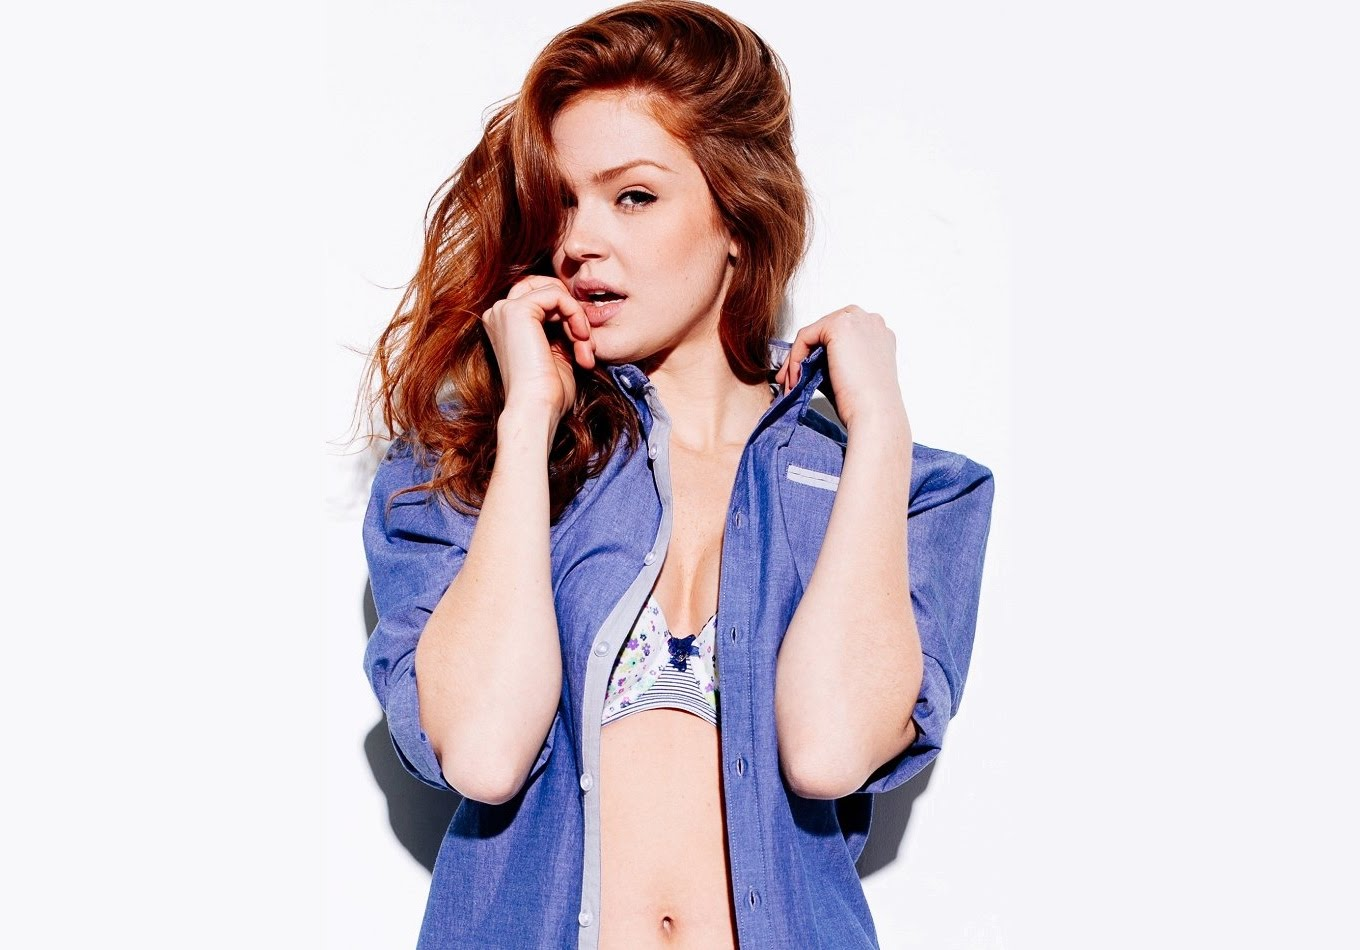 Maggie Geha Sexy Pictures